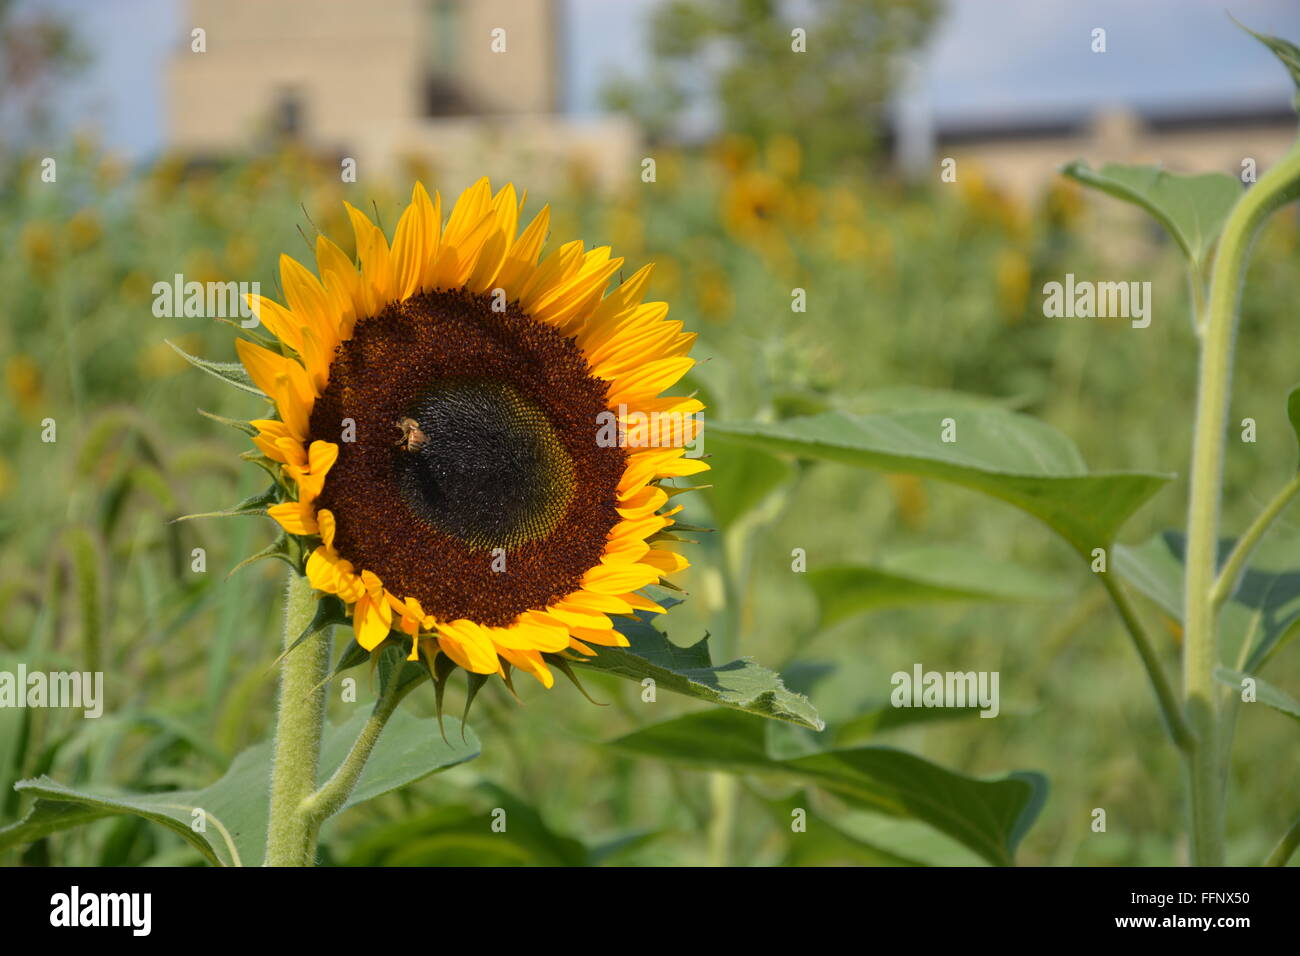 A bee attends to a sunflower in the fields behind the Garfield Park Conservatory on Chicago's near west side. - Stock Image